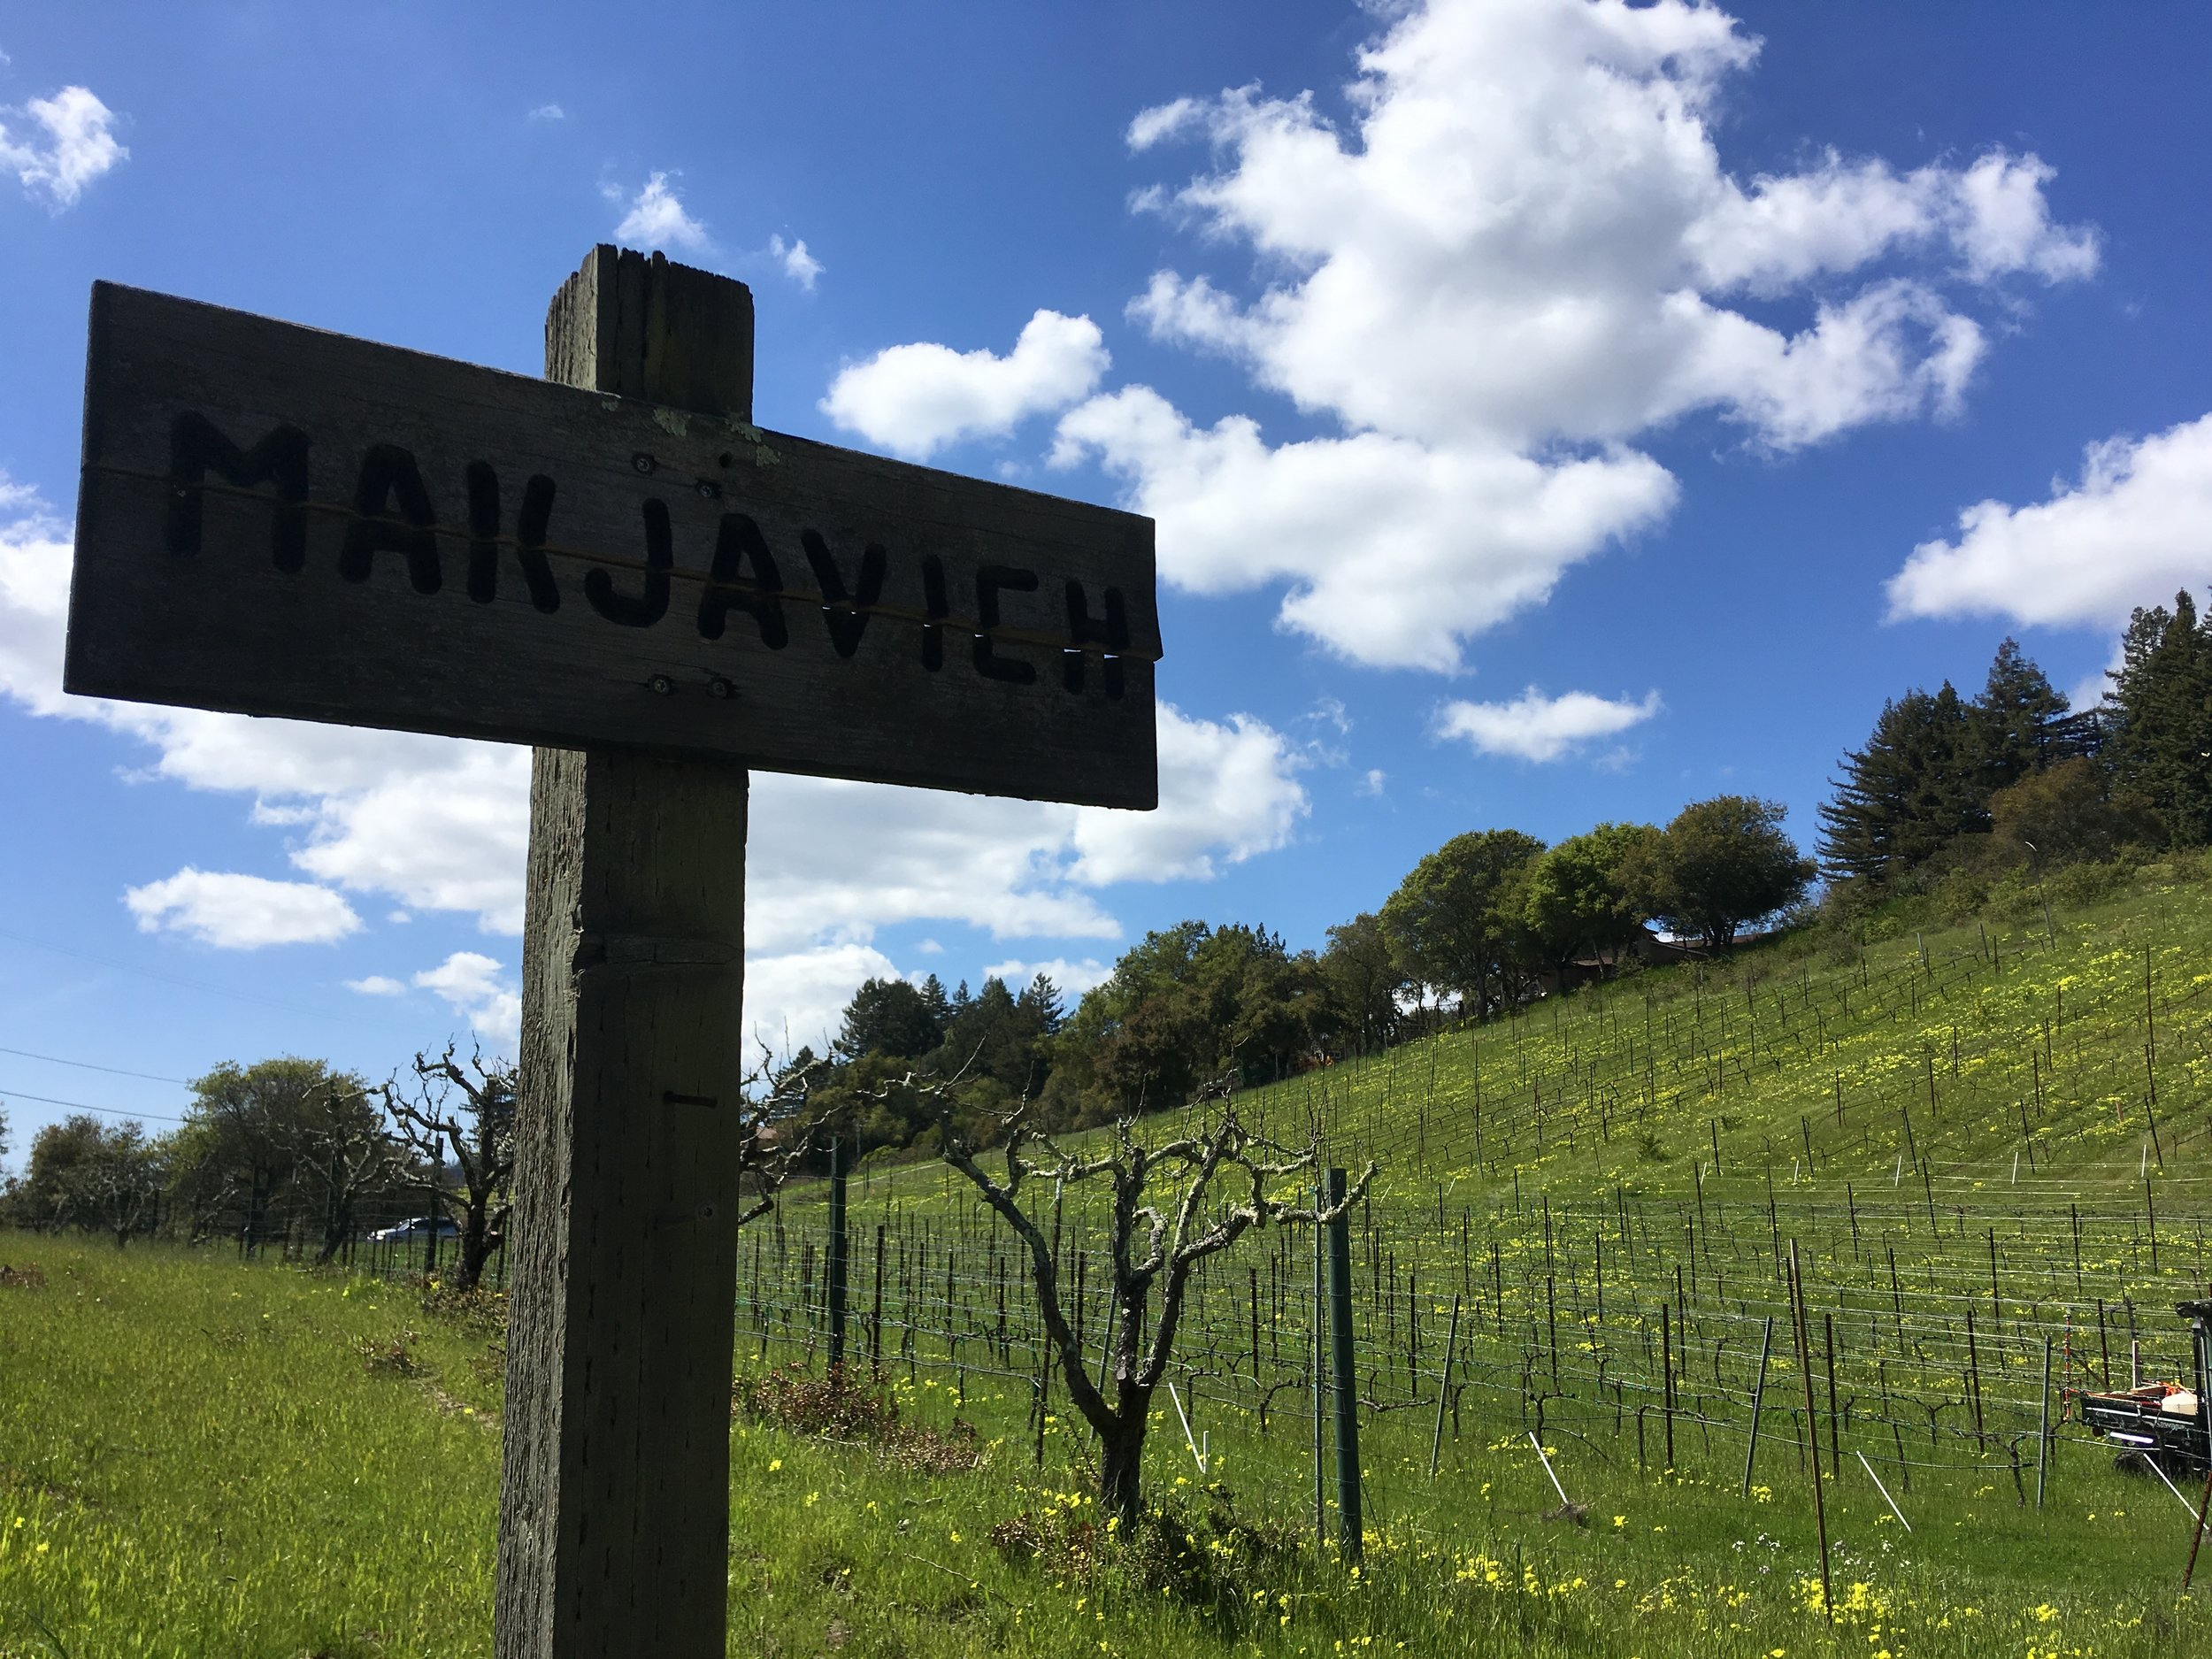 Makjavich Vineyard